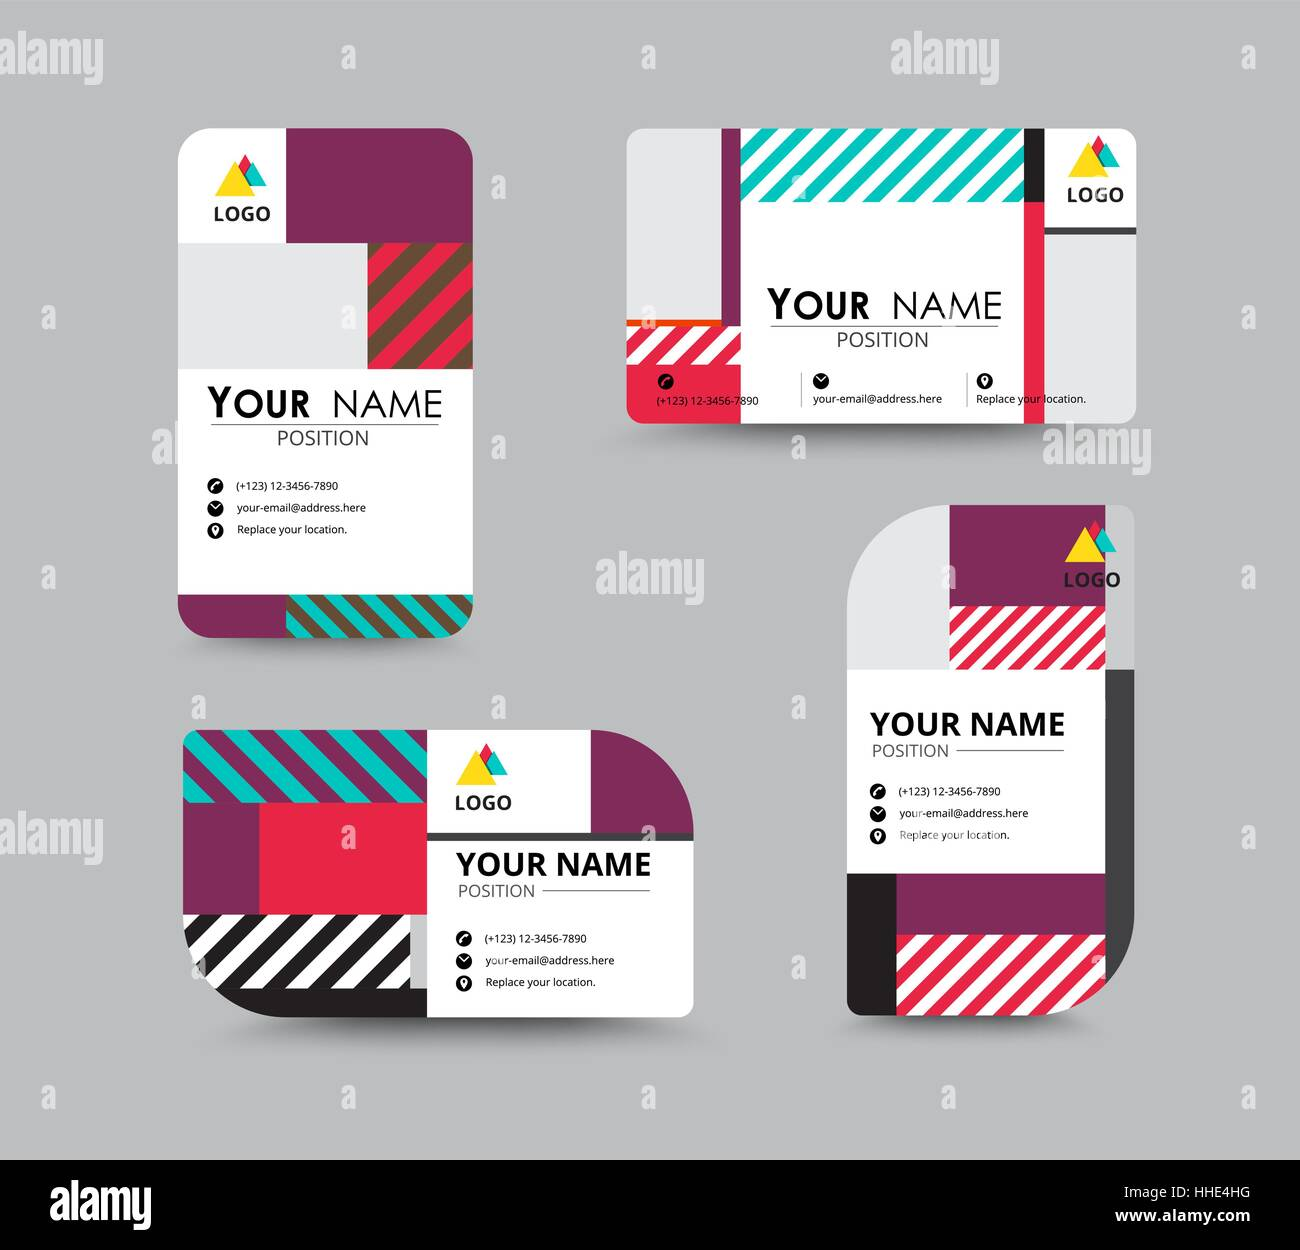 Modern Business Card And Name Design Contempolary With Sample Content Vector Illustration